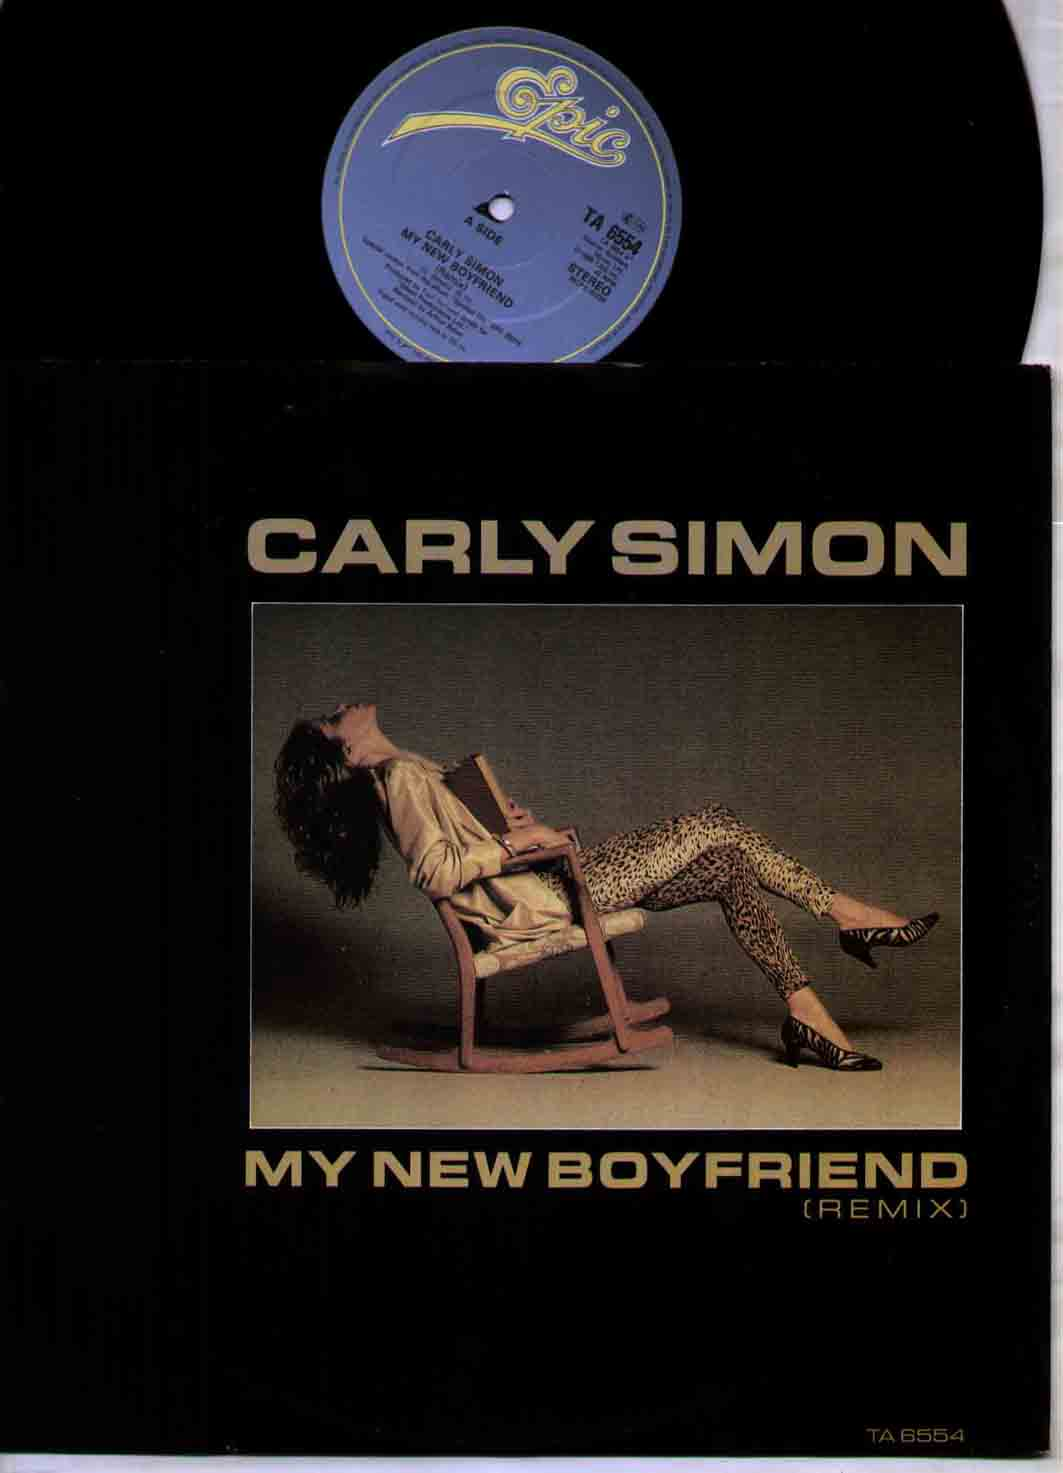 My New Boyfriend - Carly Simon